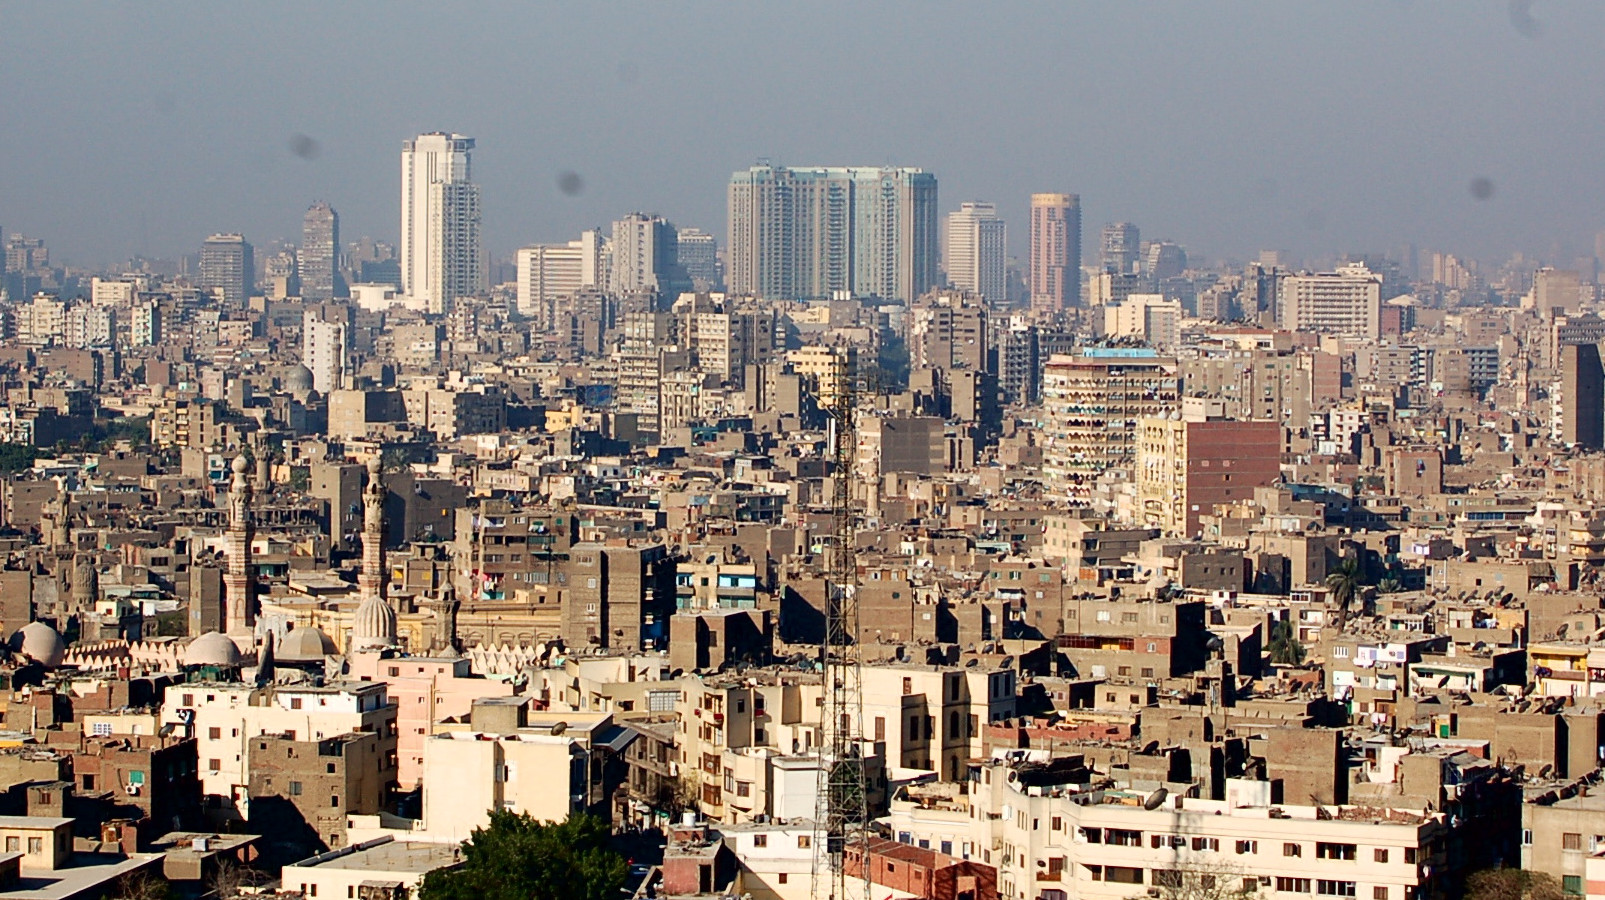 Featured image: Cairo cityscape (Dan via Flickr, CC BY-SA 2.0)